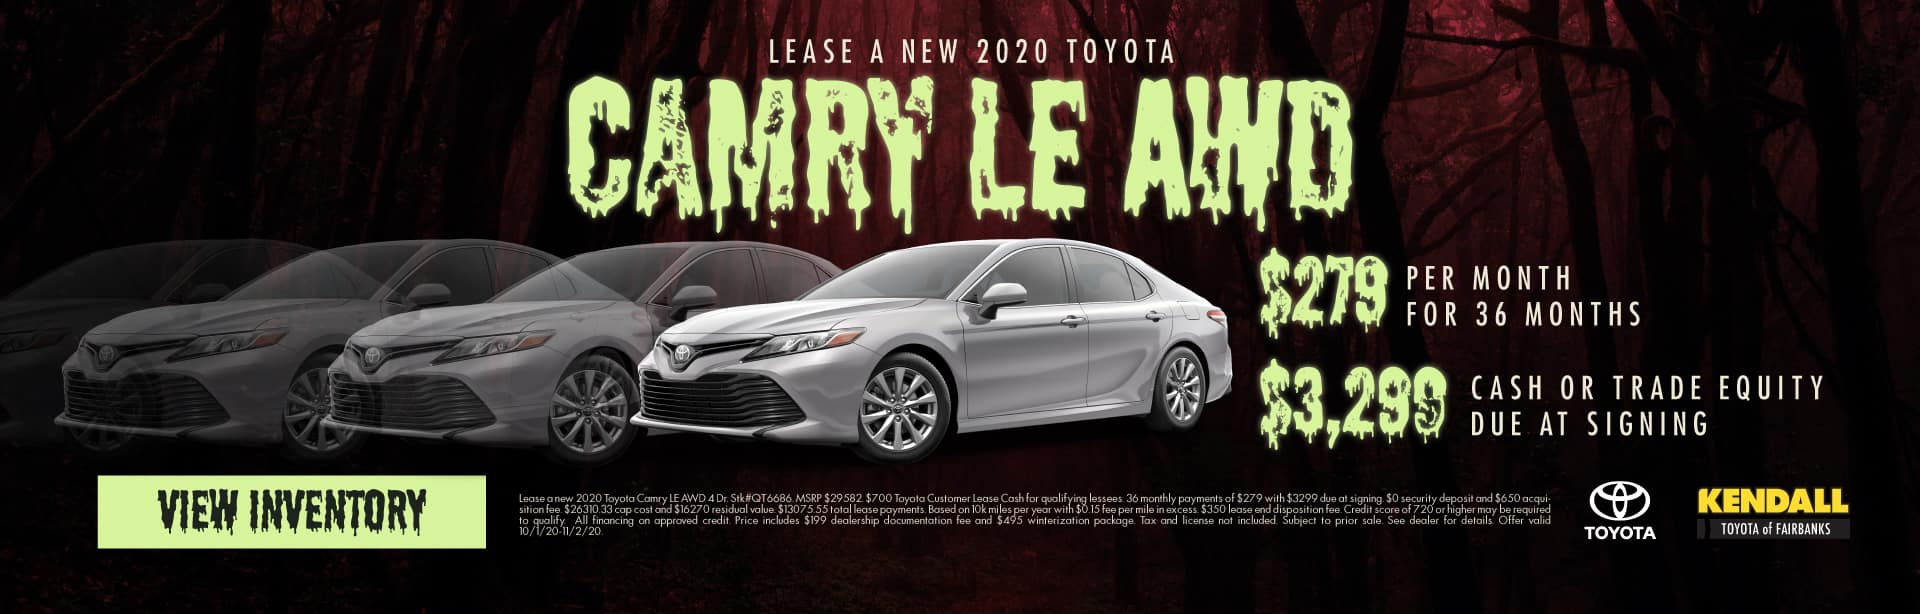 16721-FaiToy-Oct20-Web-Banners-CAMRY